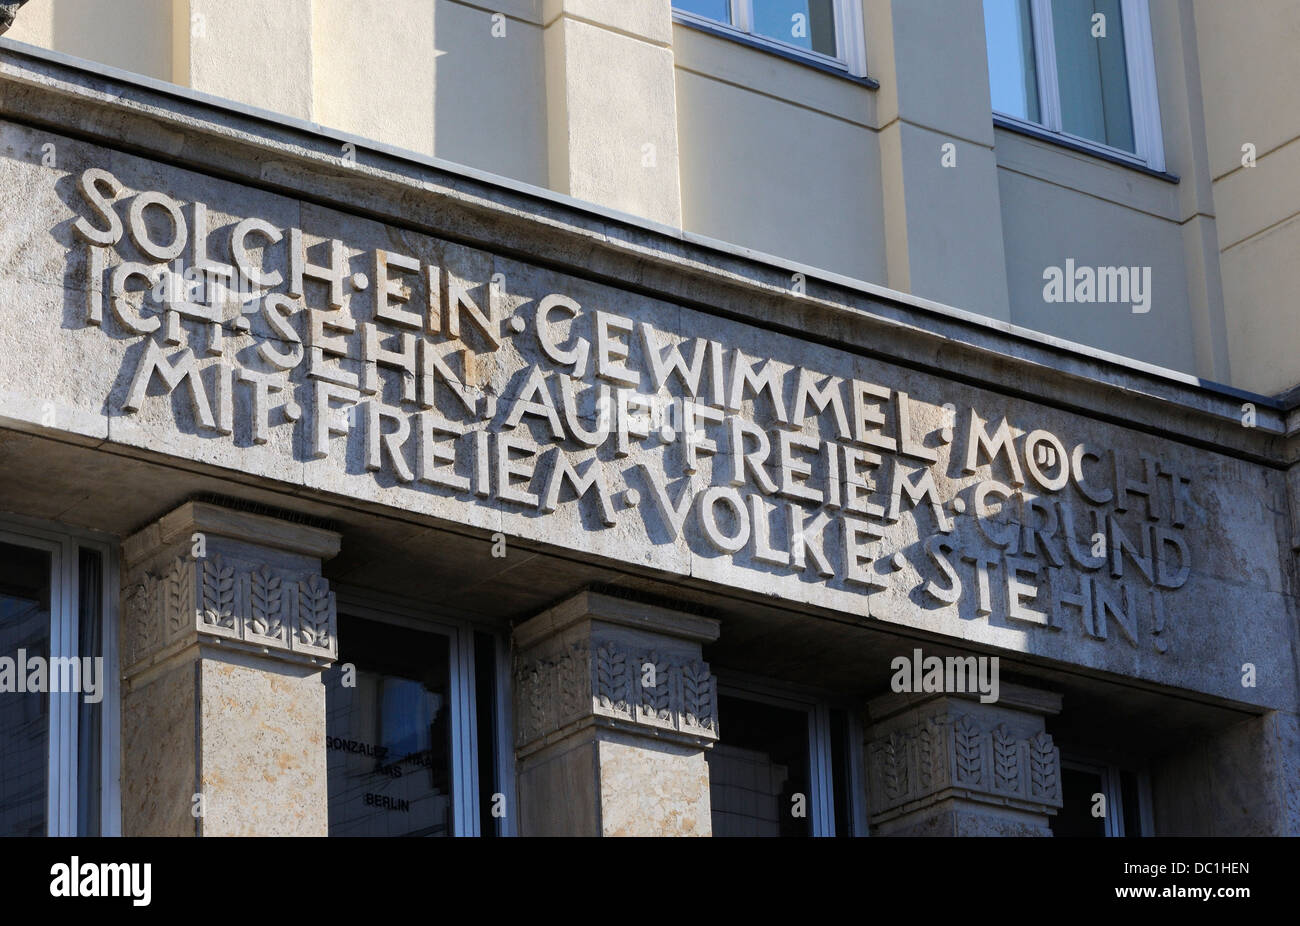 Quote from Goethe's Faust II on a former GDR building on on Strausberger Platz, Berlin, Germany. - Stock Image